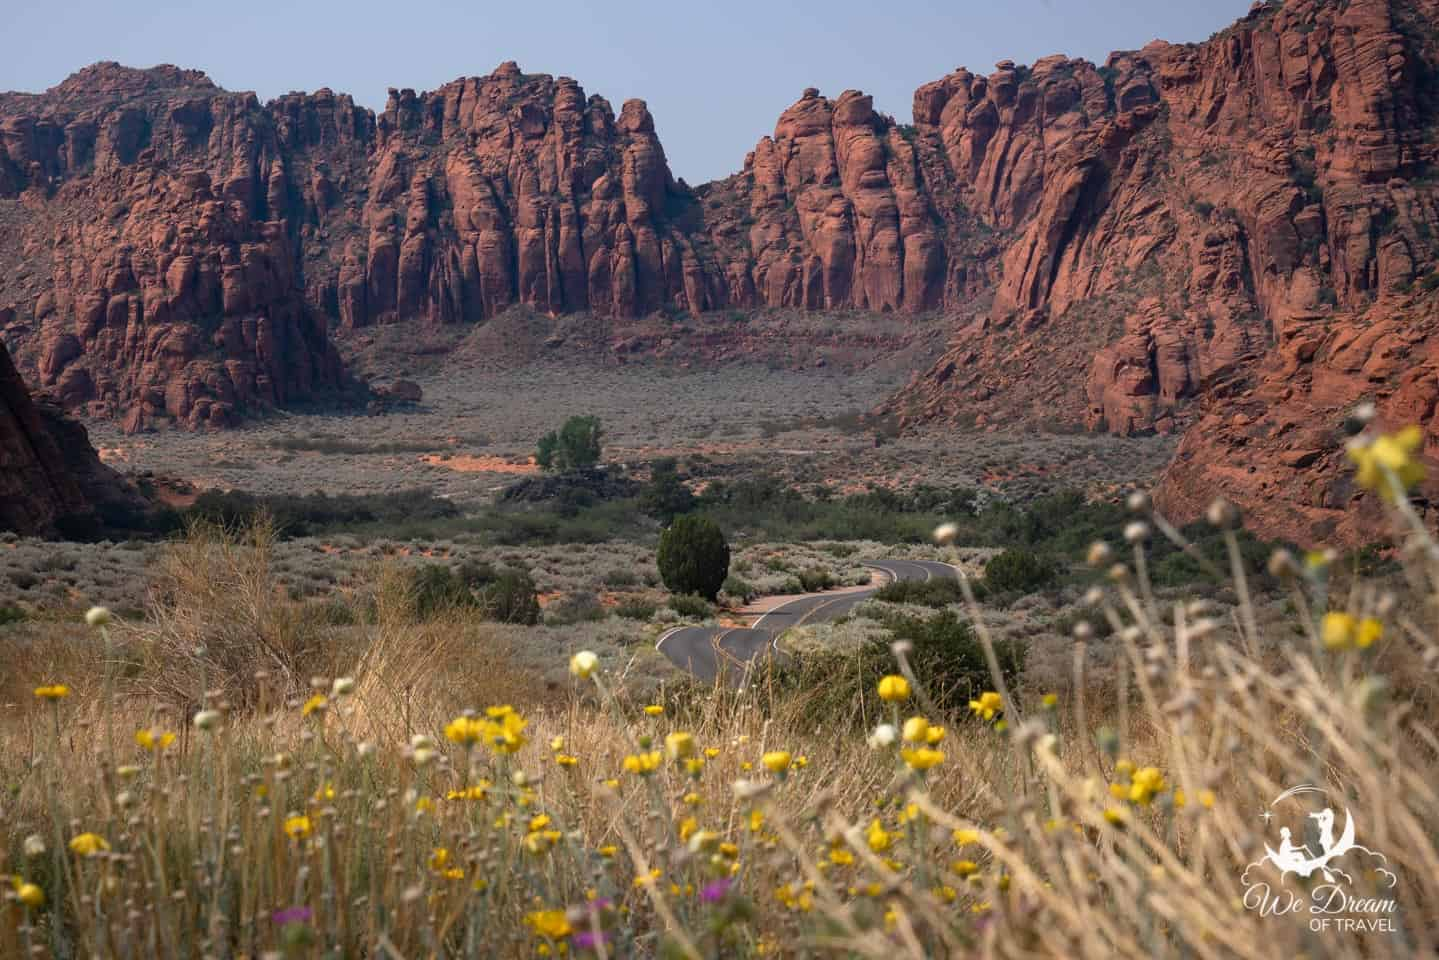 The view from the campground at Snow Canyon: A snaking road leading to red cliffs with yellow and purple wildflowers in the foreground